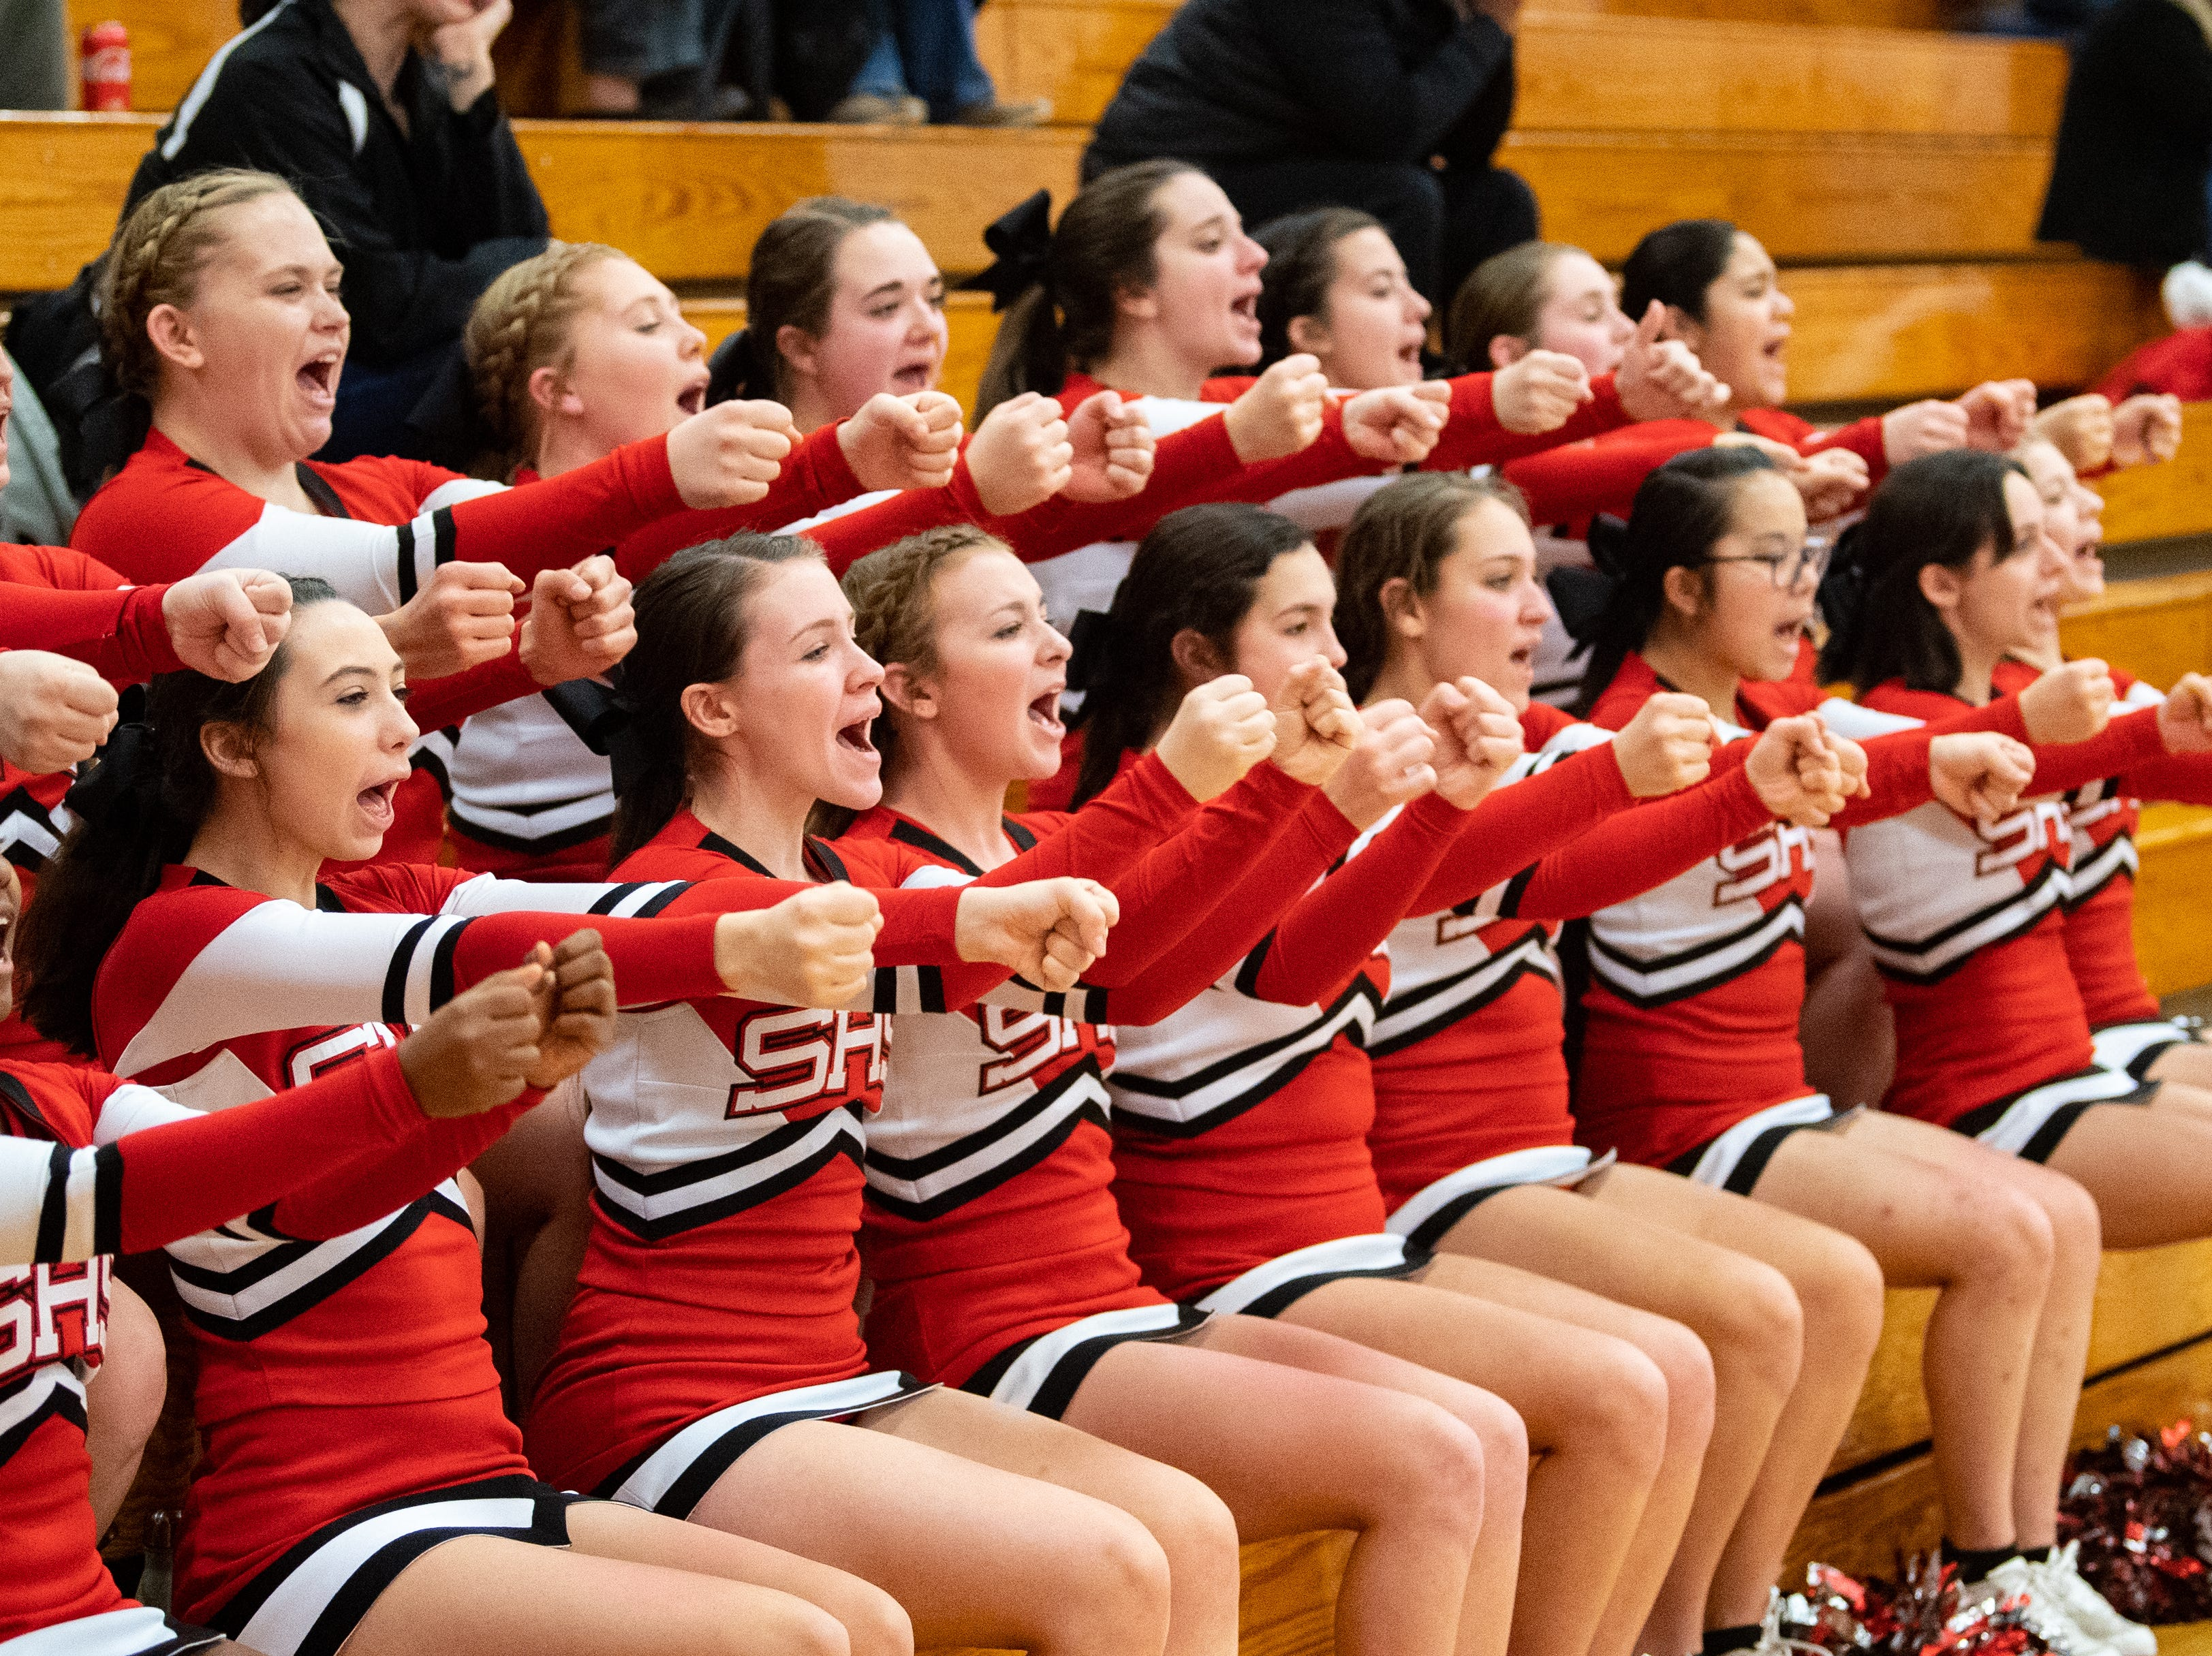 Susquehannock's cheerleaders keep the visiting crowd hyped during the game at Dover Area High School, December 18, 2018. The Eagles defeated the Warriors 69-61.